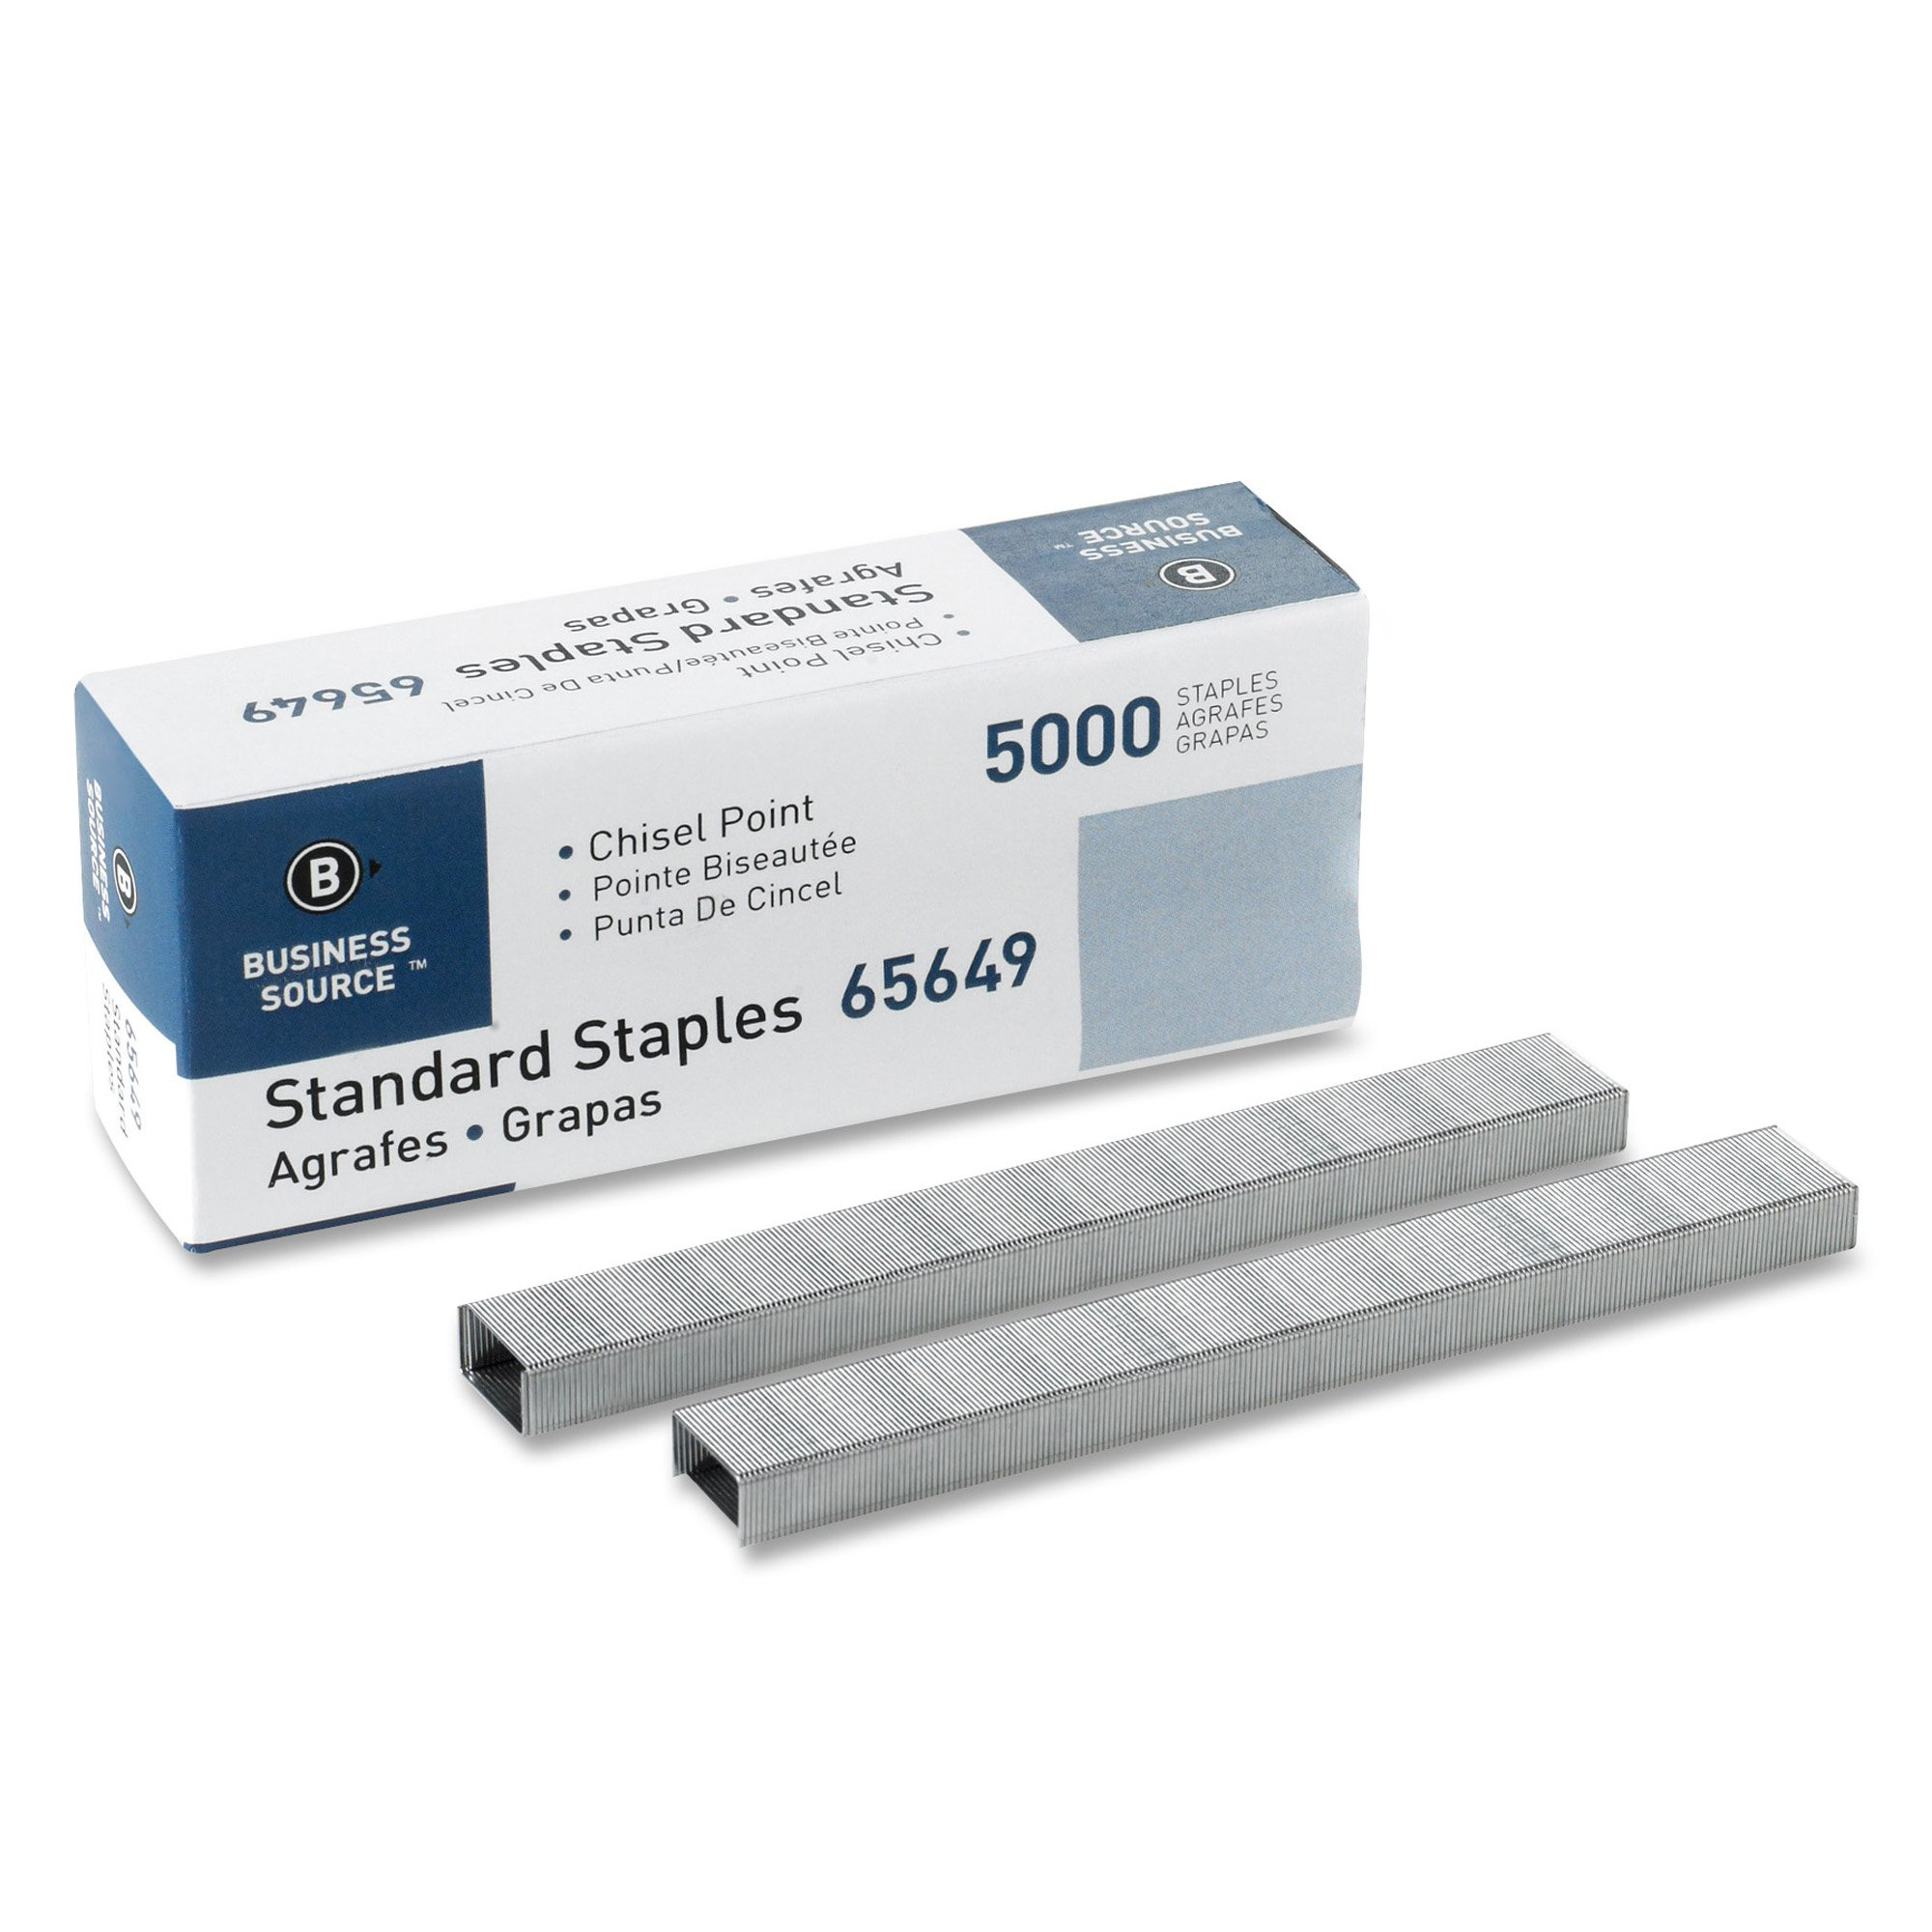 Business Source Chisel Point Standard Staples - Box of 5000 (65649)